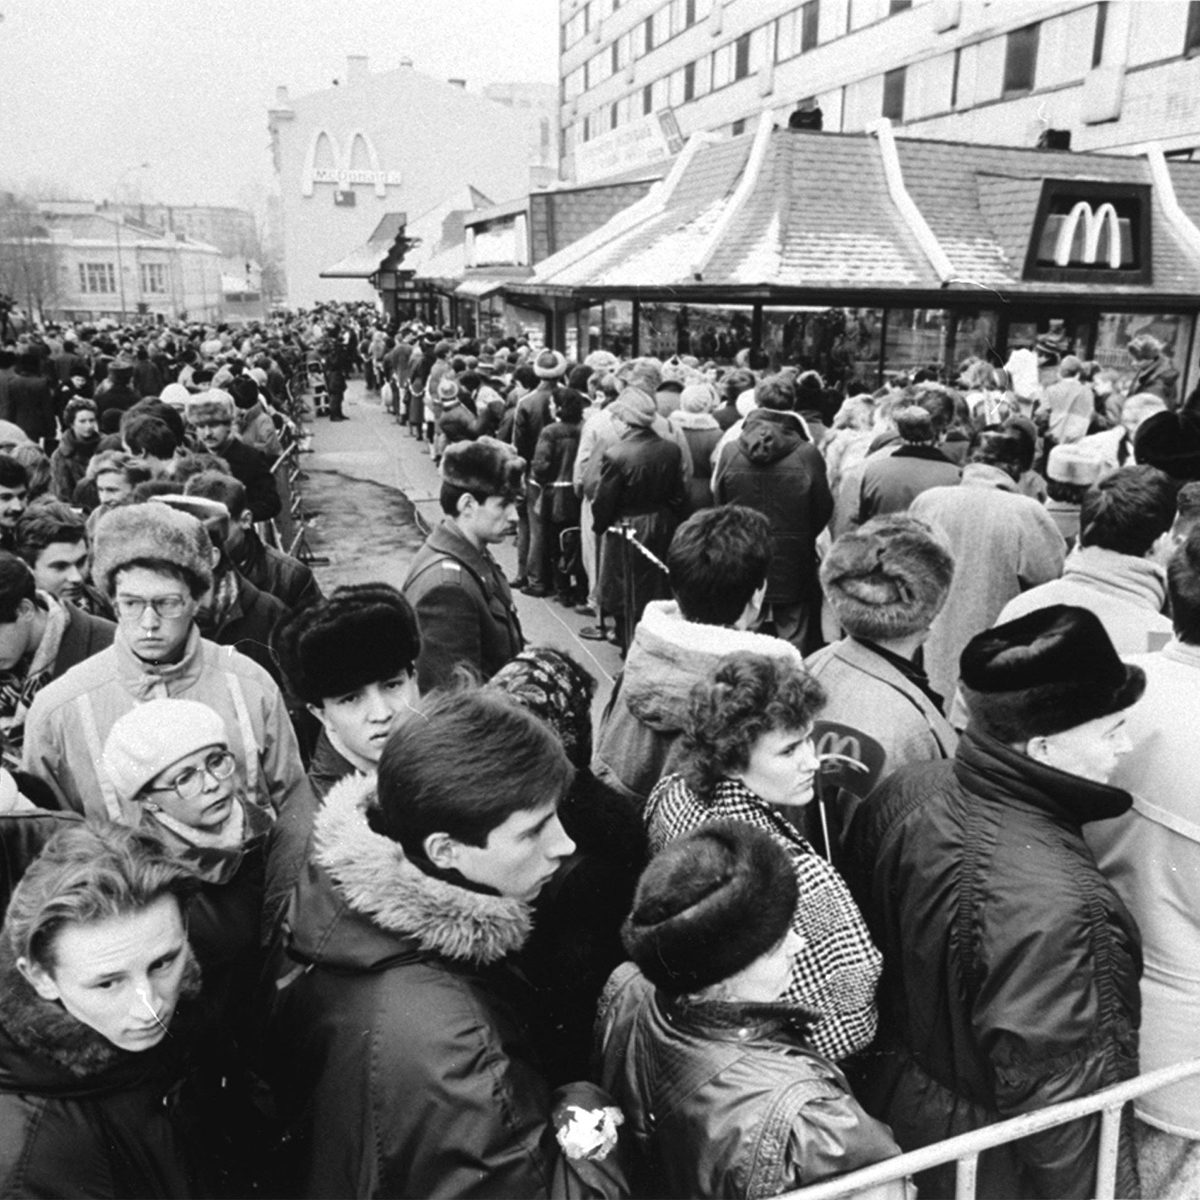 Hundreds of Soviets crowded around the first McDonald's in the Soviet Union on its opening day